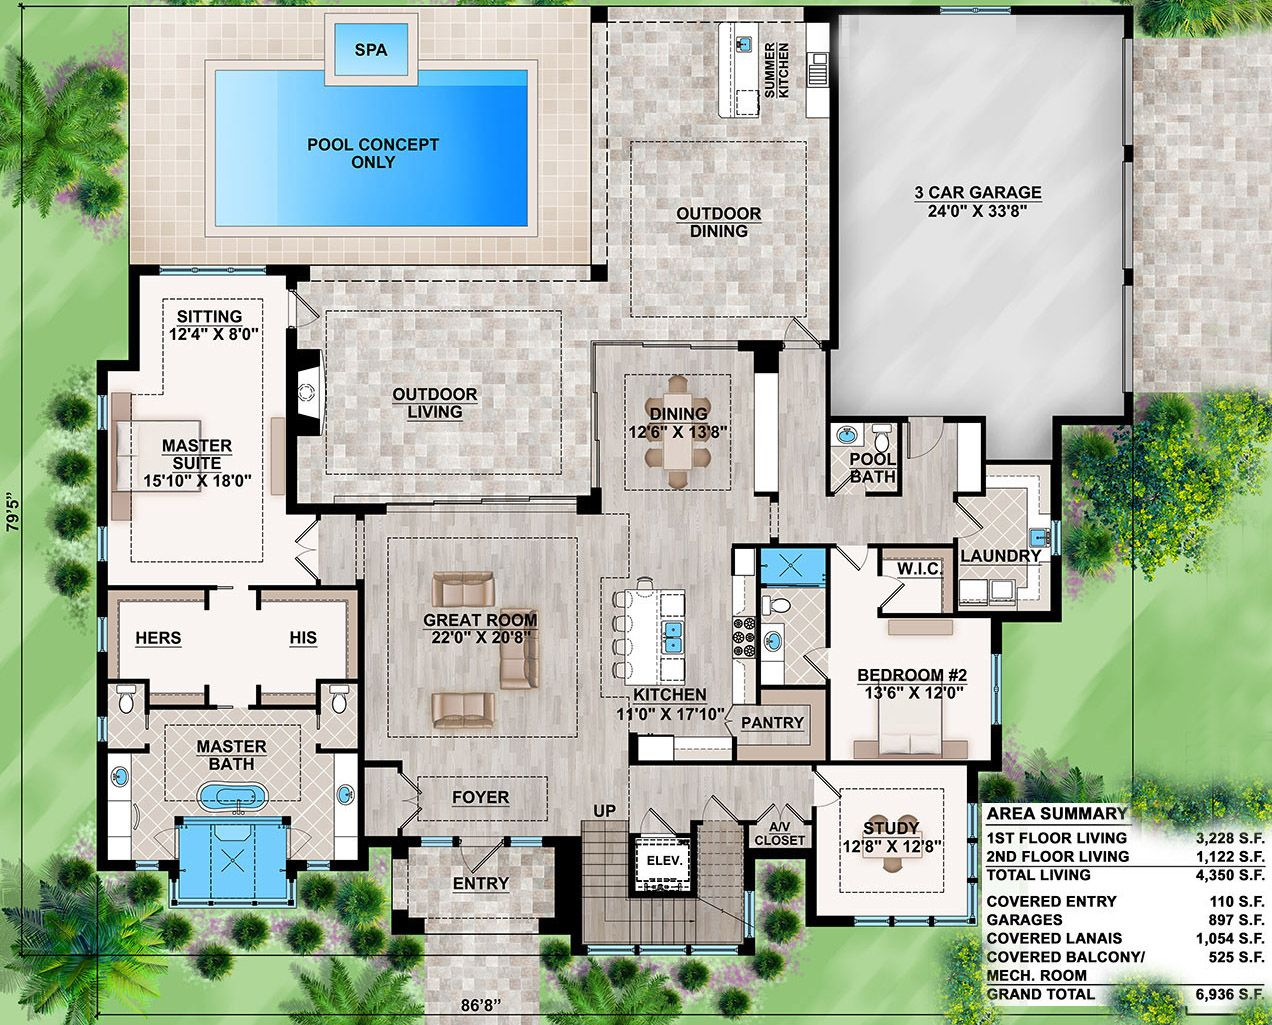 House Plan 207 00055 Contemporary Plan 4 350 Square Feet 4 Bedrooms 4 5 Bathrooms Mediterranean Style House Plans House Floor Plans Mediterranean Homes